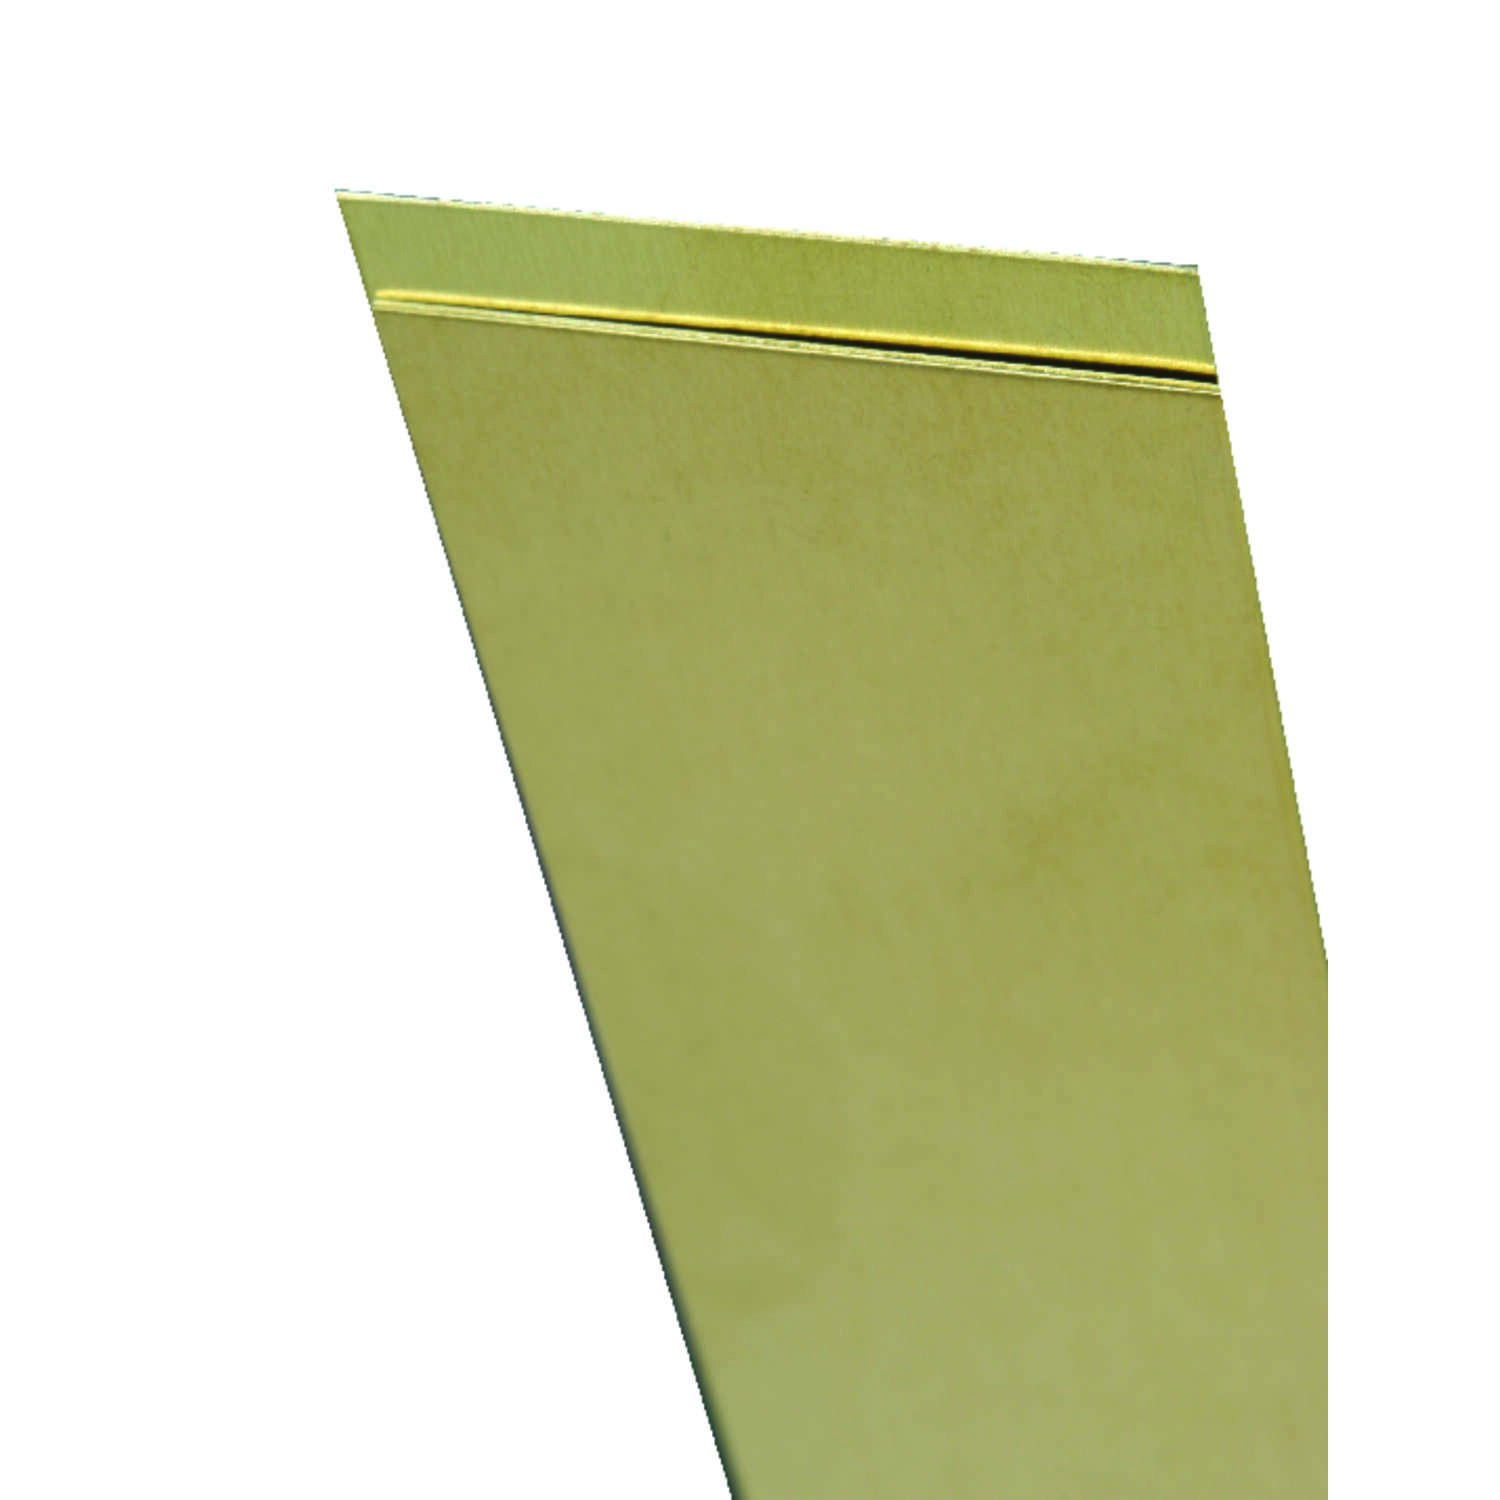 K&S  0.01 in.  x 4 in. W x 10 in. L Brass  Sheet Metal